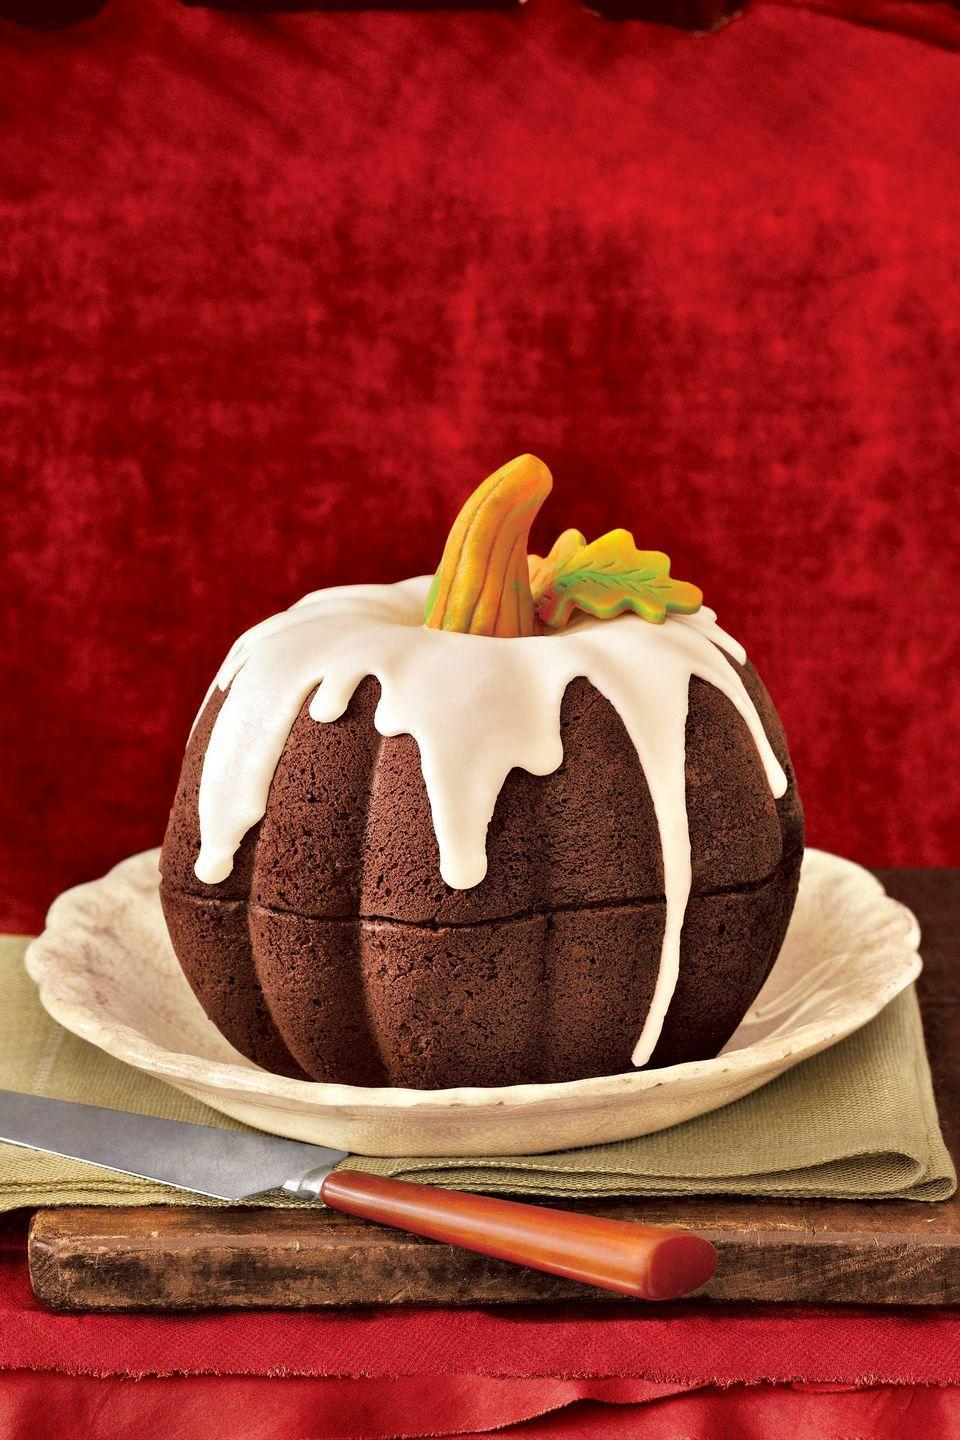 """<p>With its vanilla-sugar icing and marzipan stem, this cake is sure to earn Best in Show. The secret to its perfect form? A fluted, dome-shaped pan. The pumpkin shape is actually two dome cakes, fitted together. Add stem and leaf after icing.</p><p><strong><a href=""""https://www.countryliving.com/food-drinks/g274/pumpkin-cakes/?slide=19"""" rel=""""nofollow noopener"""" target=""""_blank"""" data-ylk=""""slk:Get the recipe"""" class=""""link rapid-noclick-resp"""">Get the recipe</a>.</strong> </p>"""